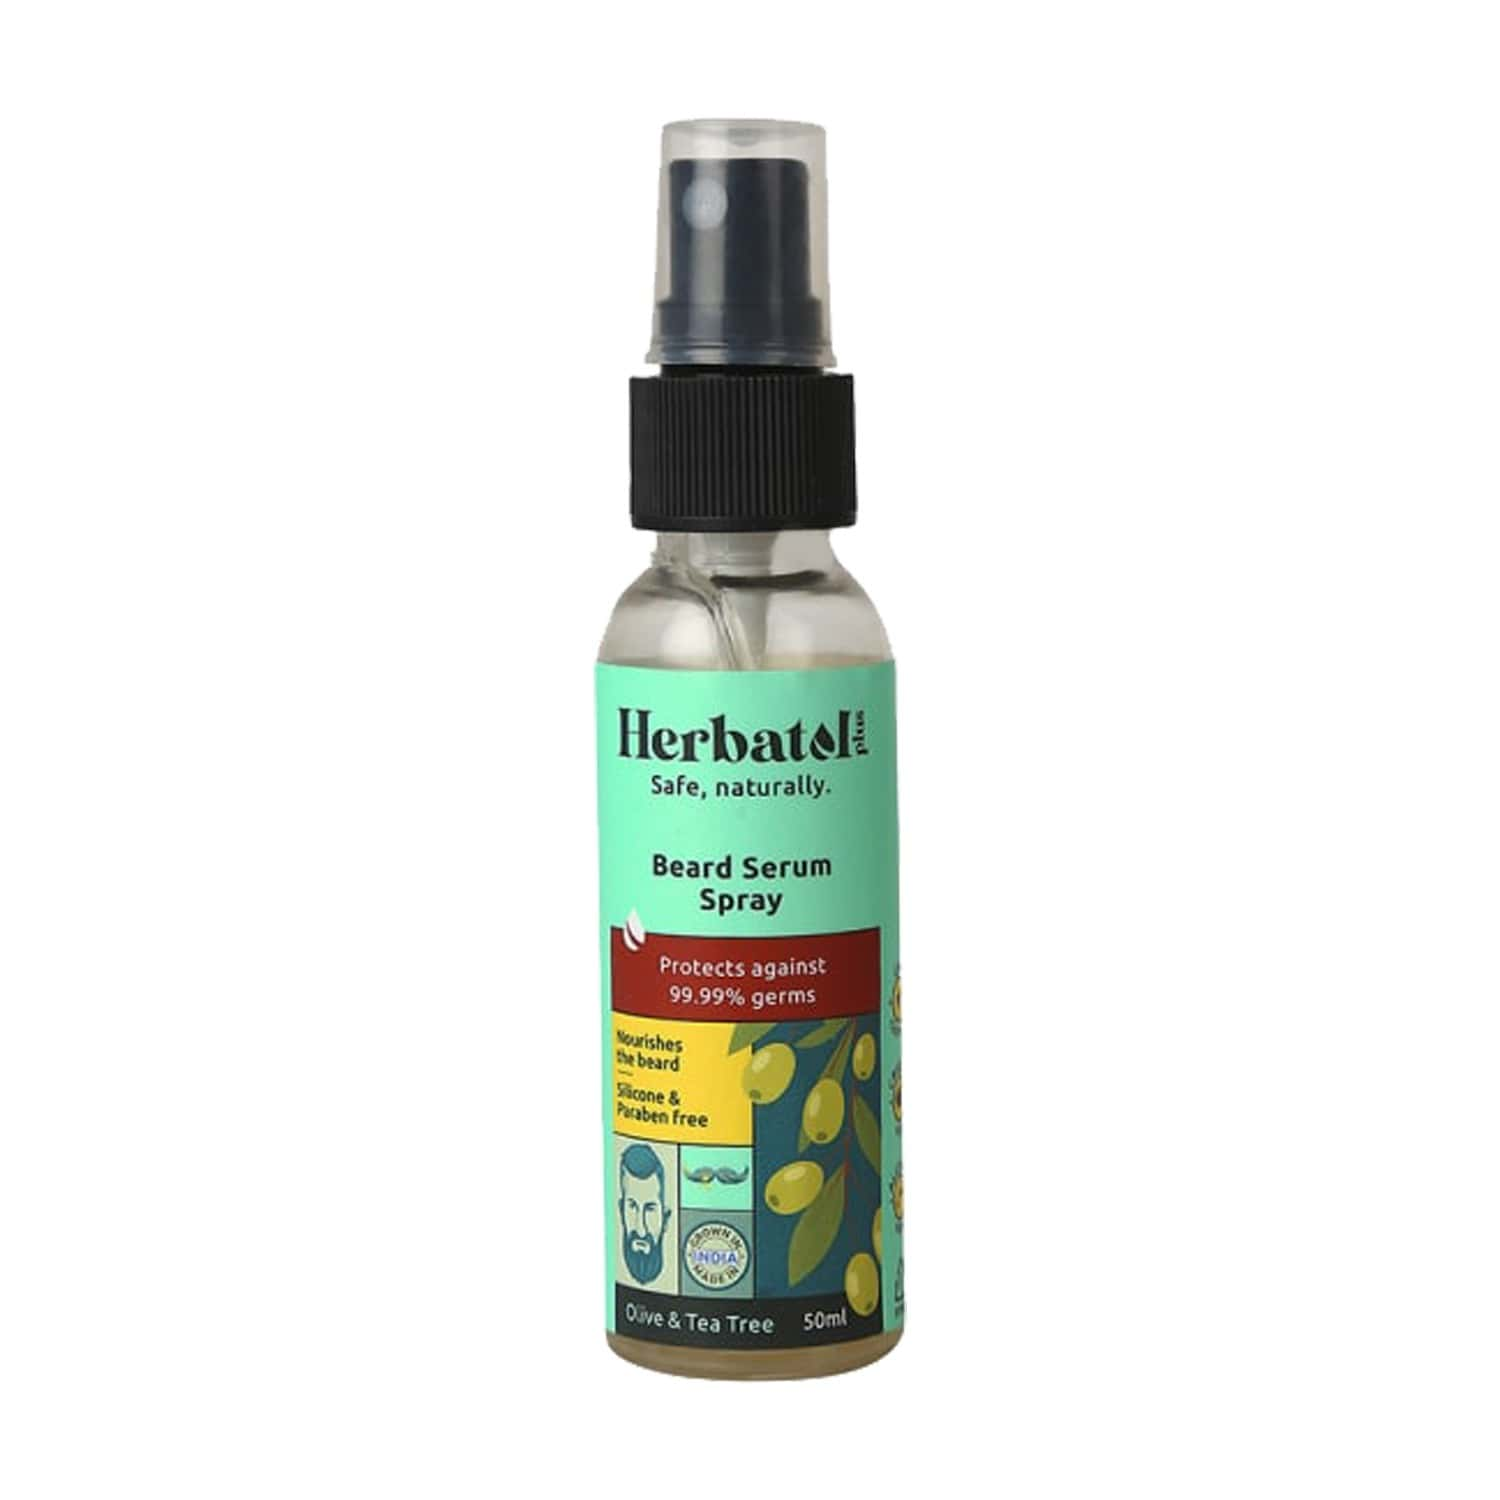 Herbatol Plus Beard Serum Spray For 99.99% Germ Protection | Enriched With Tea Tree & Olive Oil 50ml